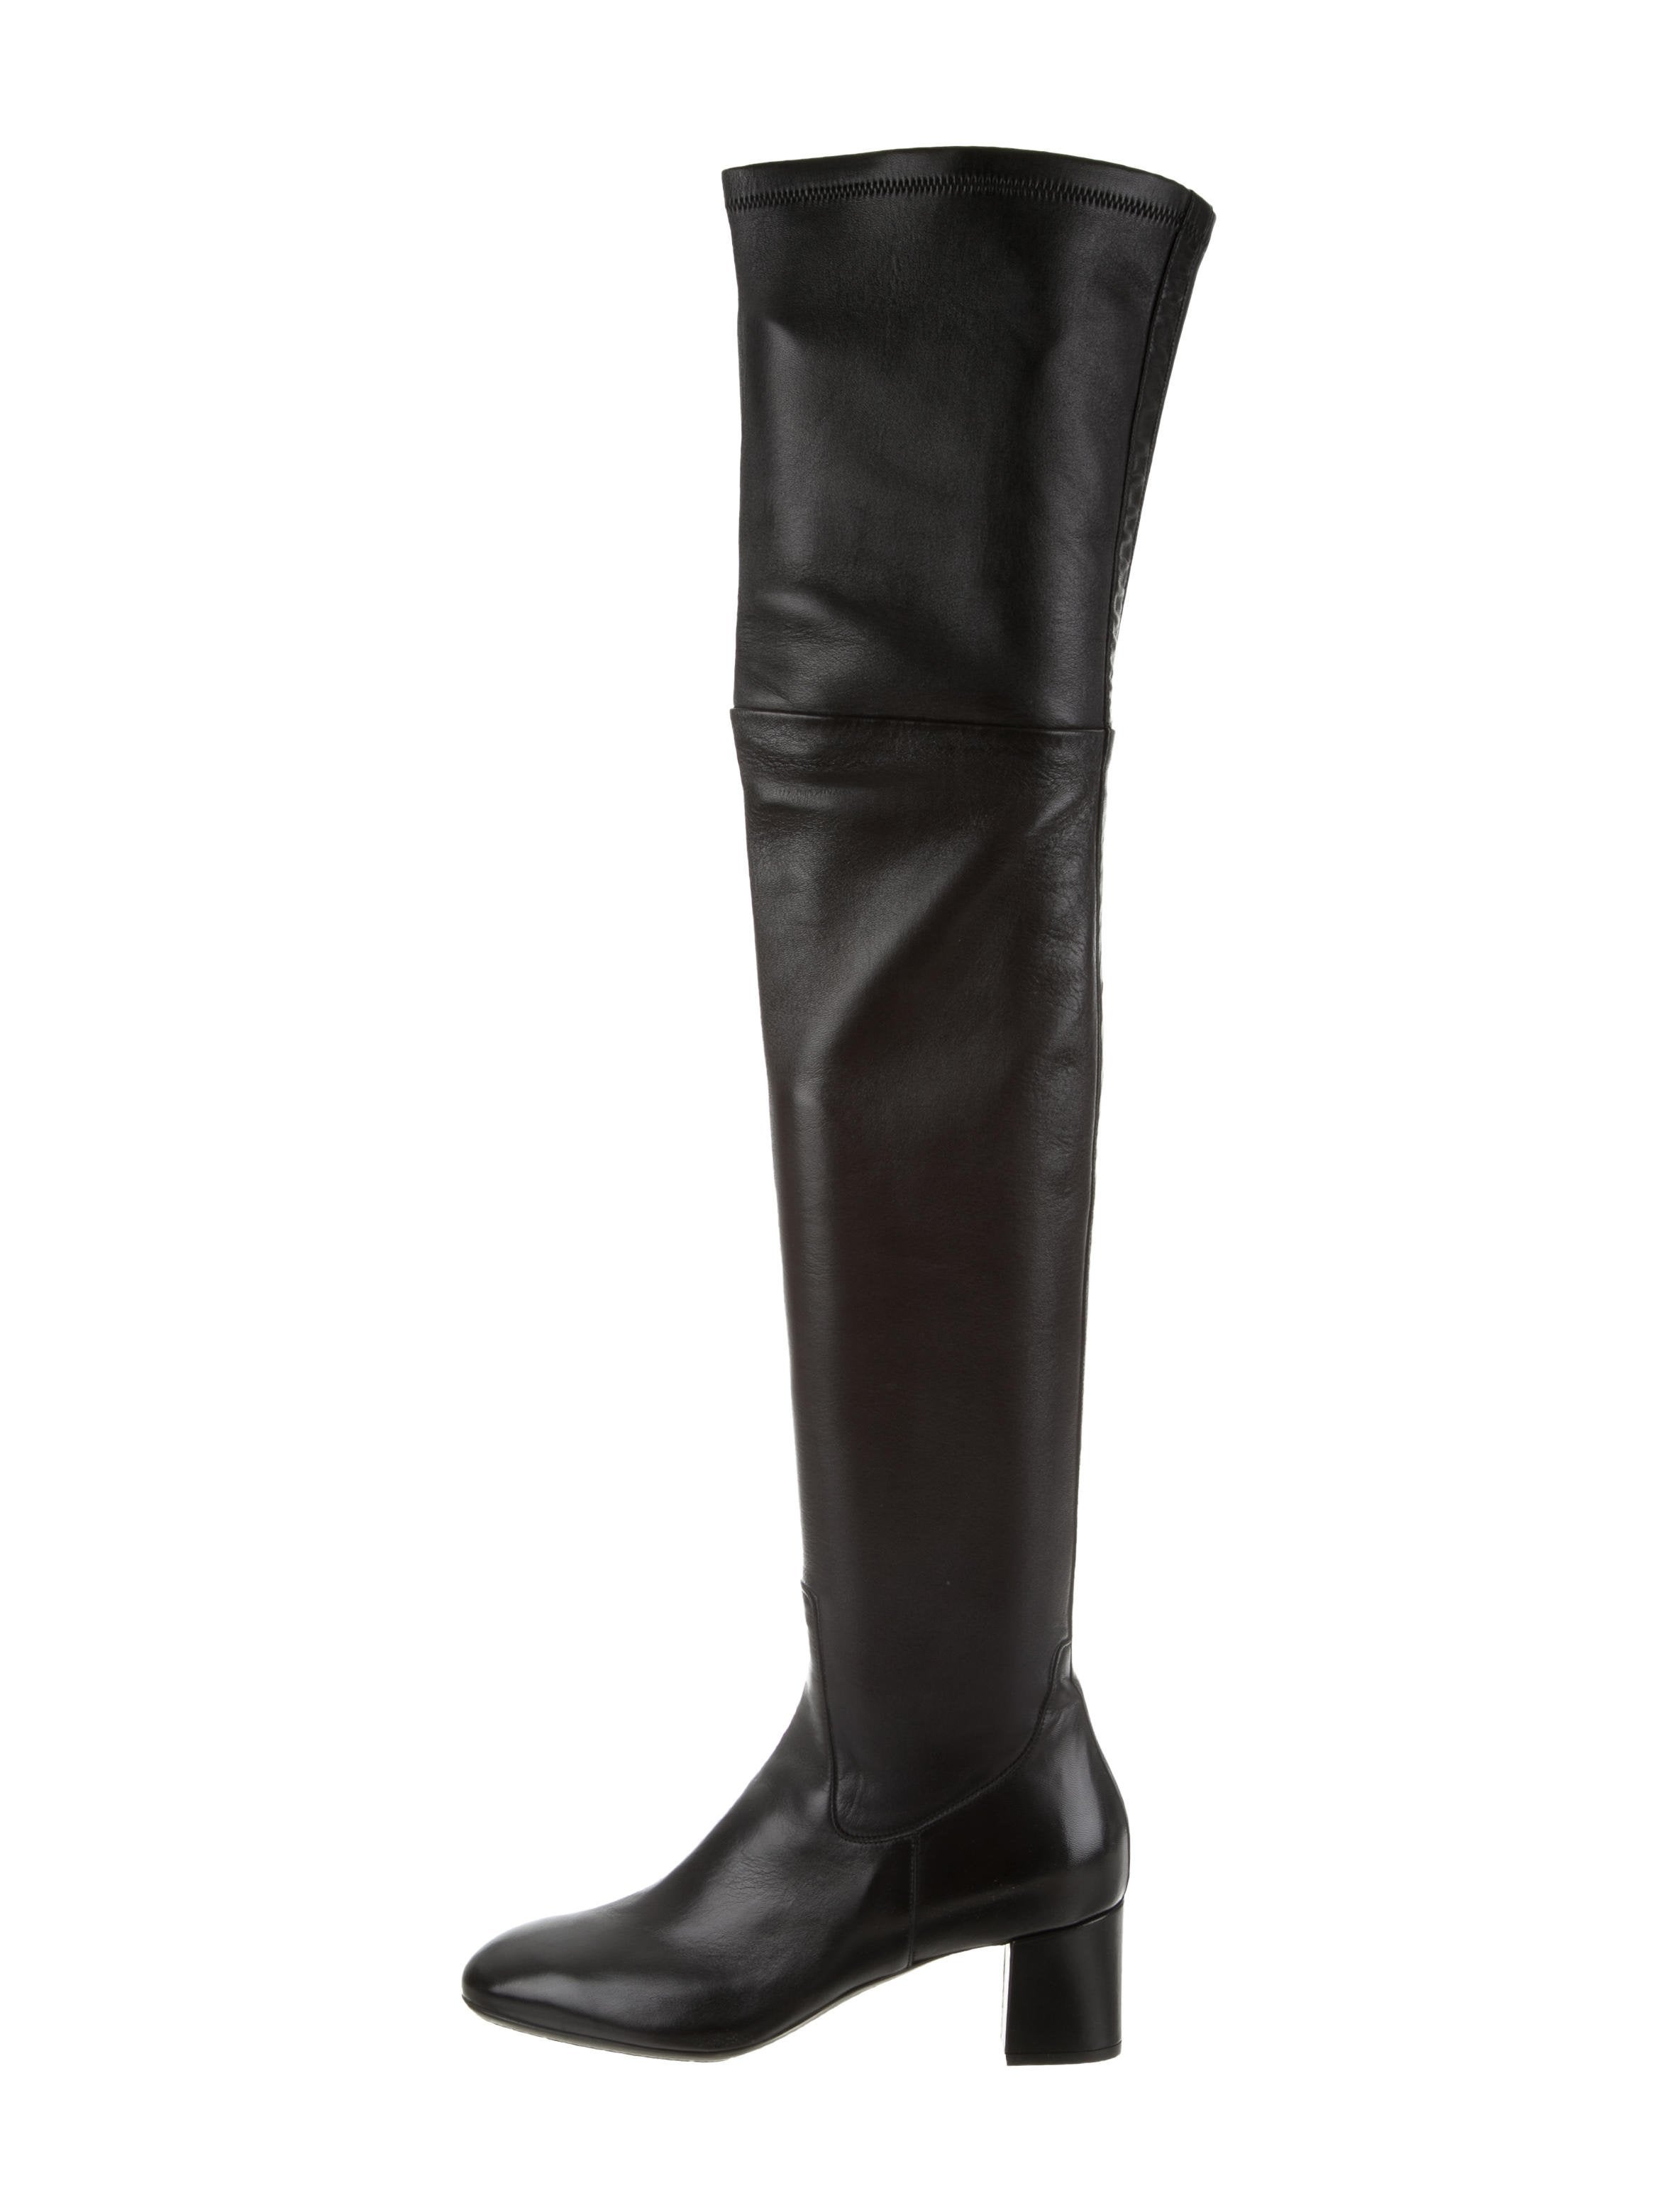 Santoni Leather Over-The-Knee Boots w/ Tags outlet order online outlet cheap price clearance order clearance Cheapest buy cheap get authentic 5HioVcg